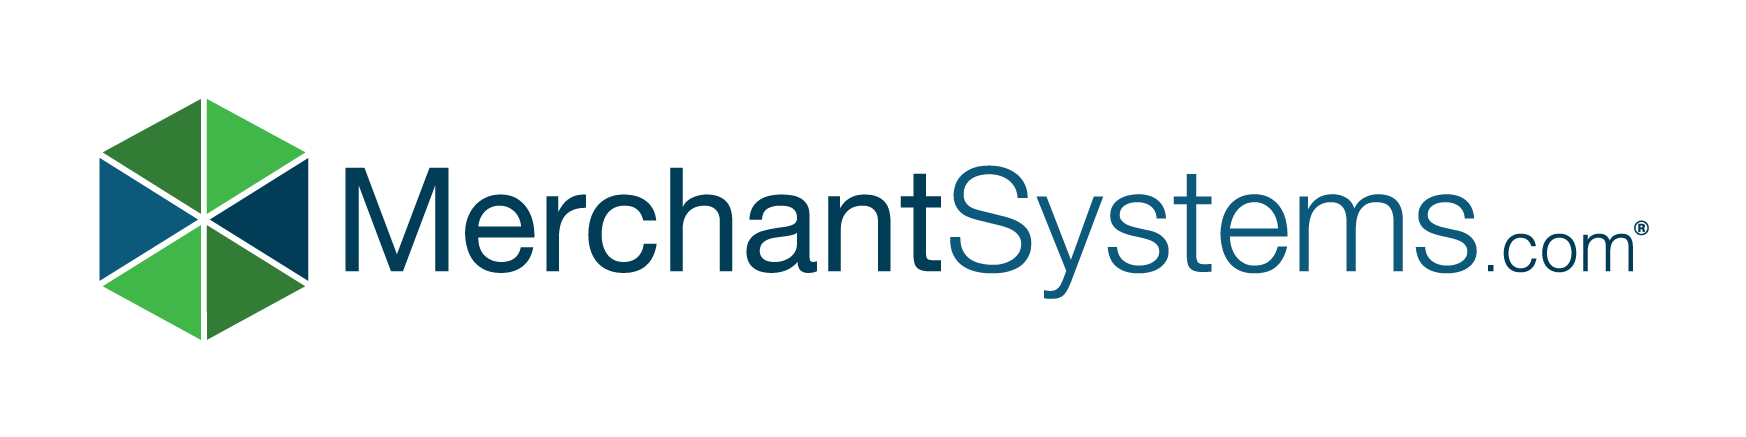 670.MerchantSystems.com-FINAL-LOGO.png